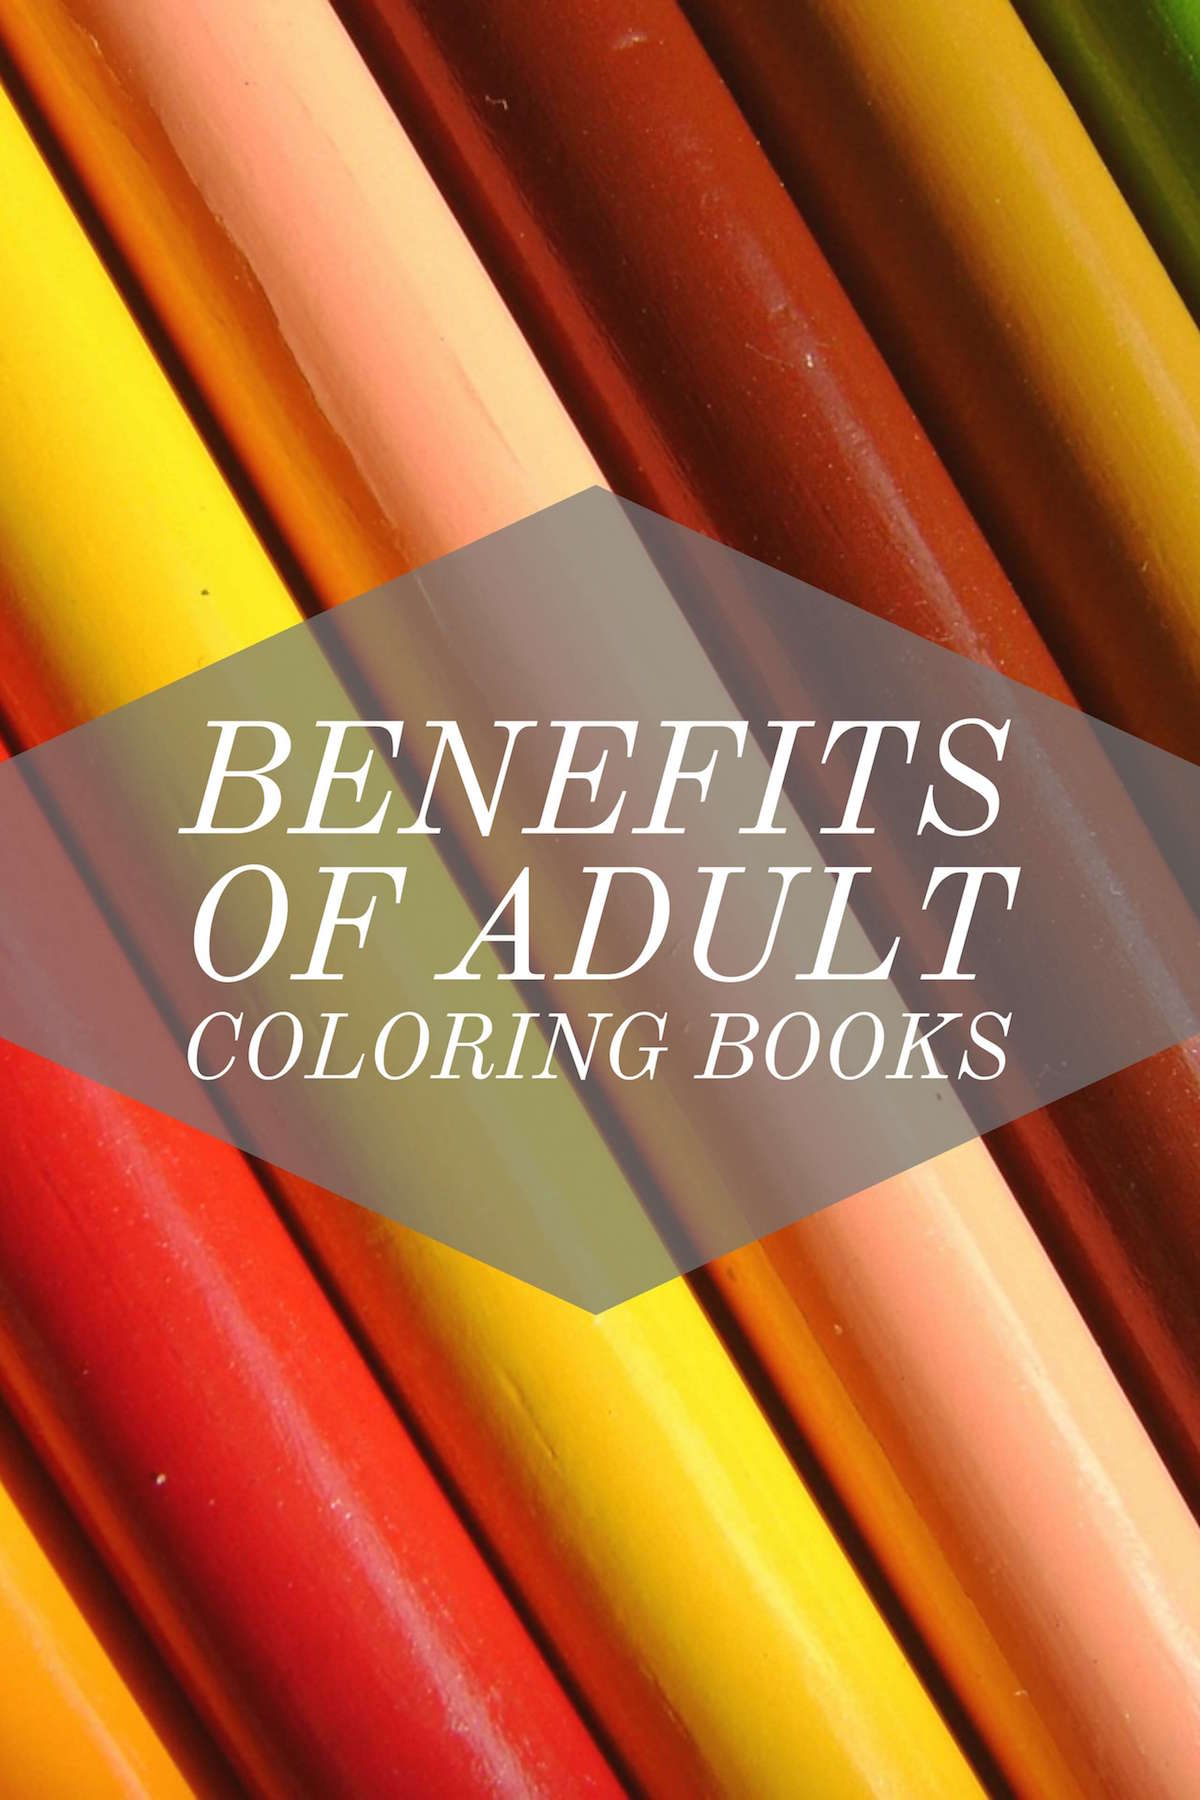 8 Incredible Benefits of Adult Coloring books